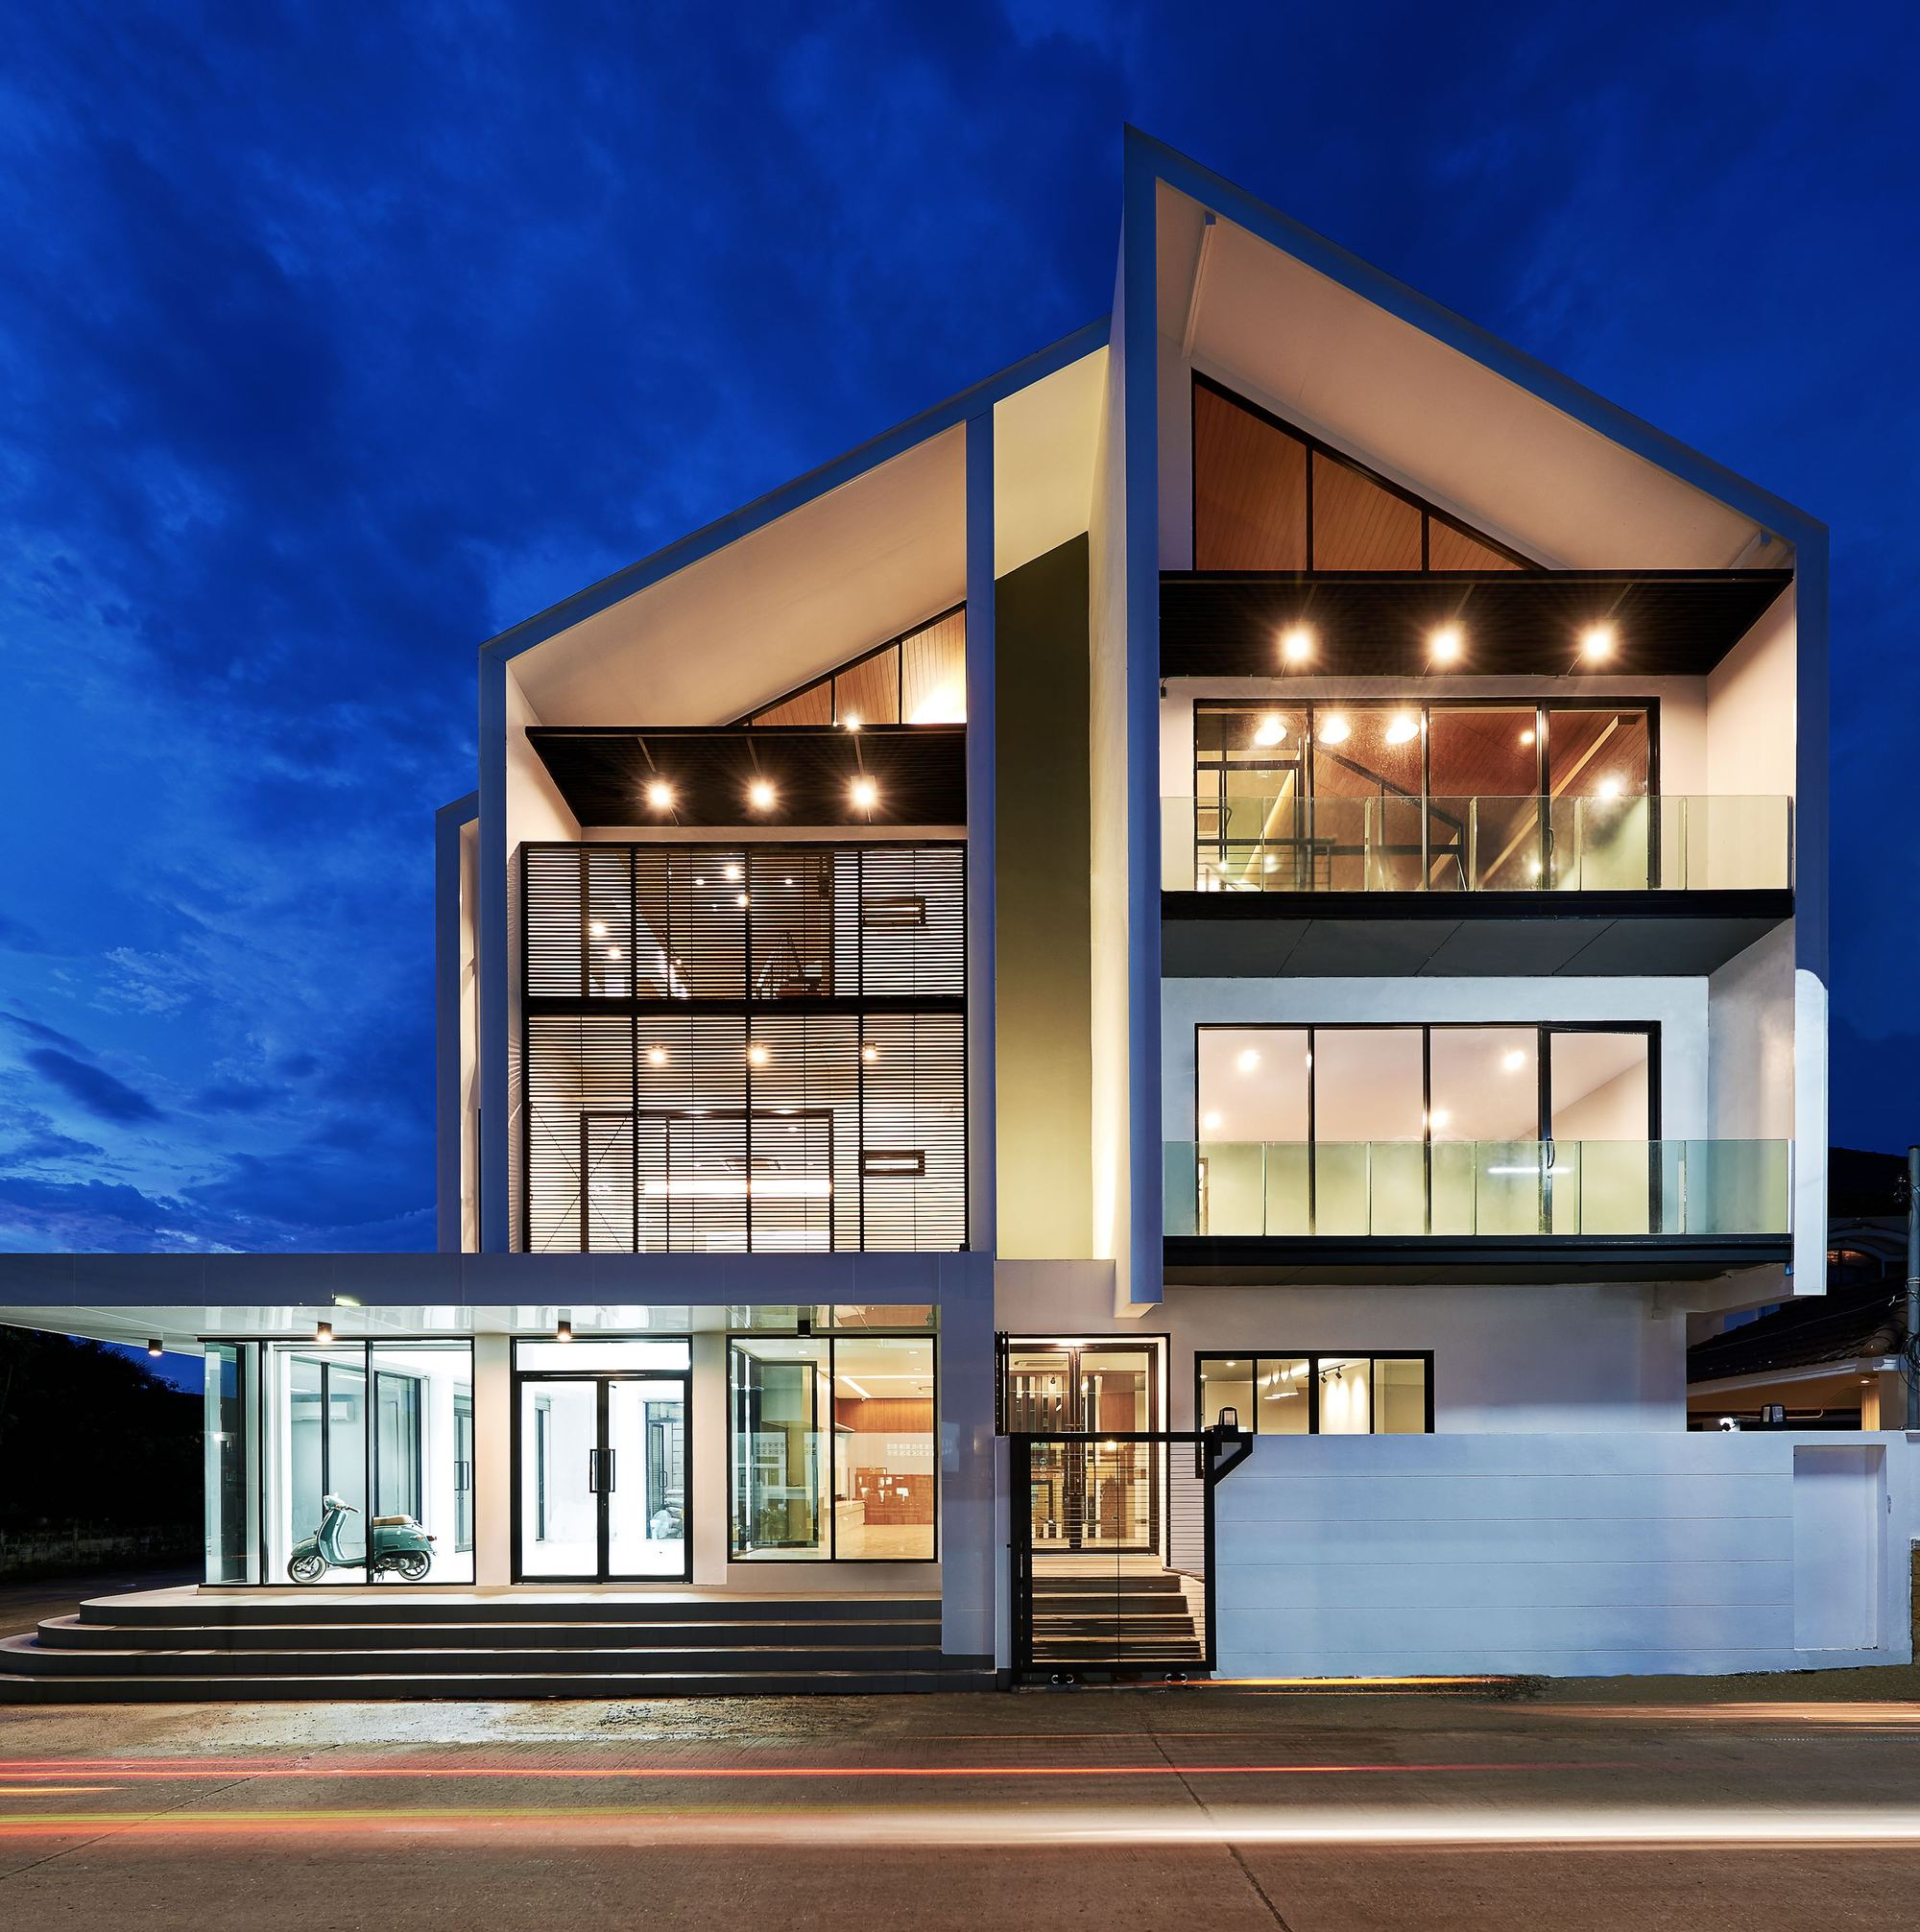 Modern Building in Tropical Climate